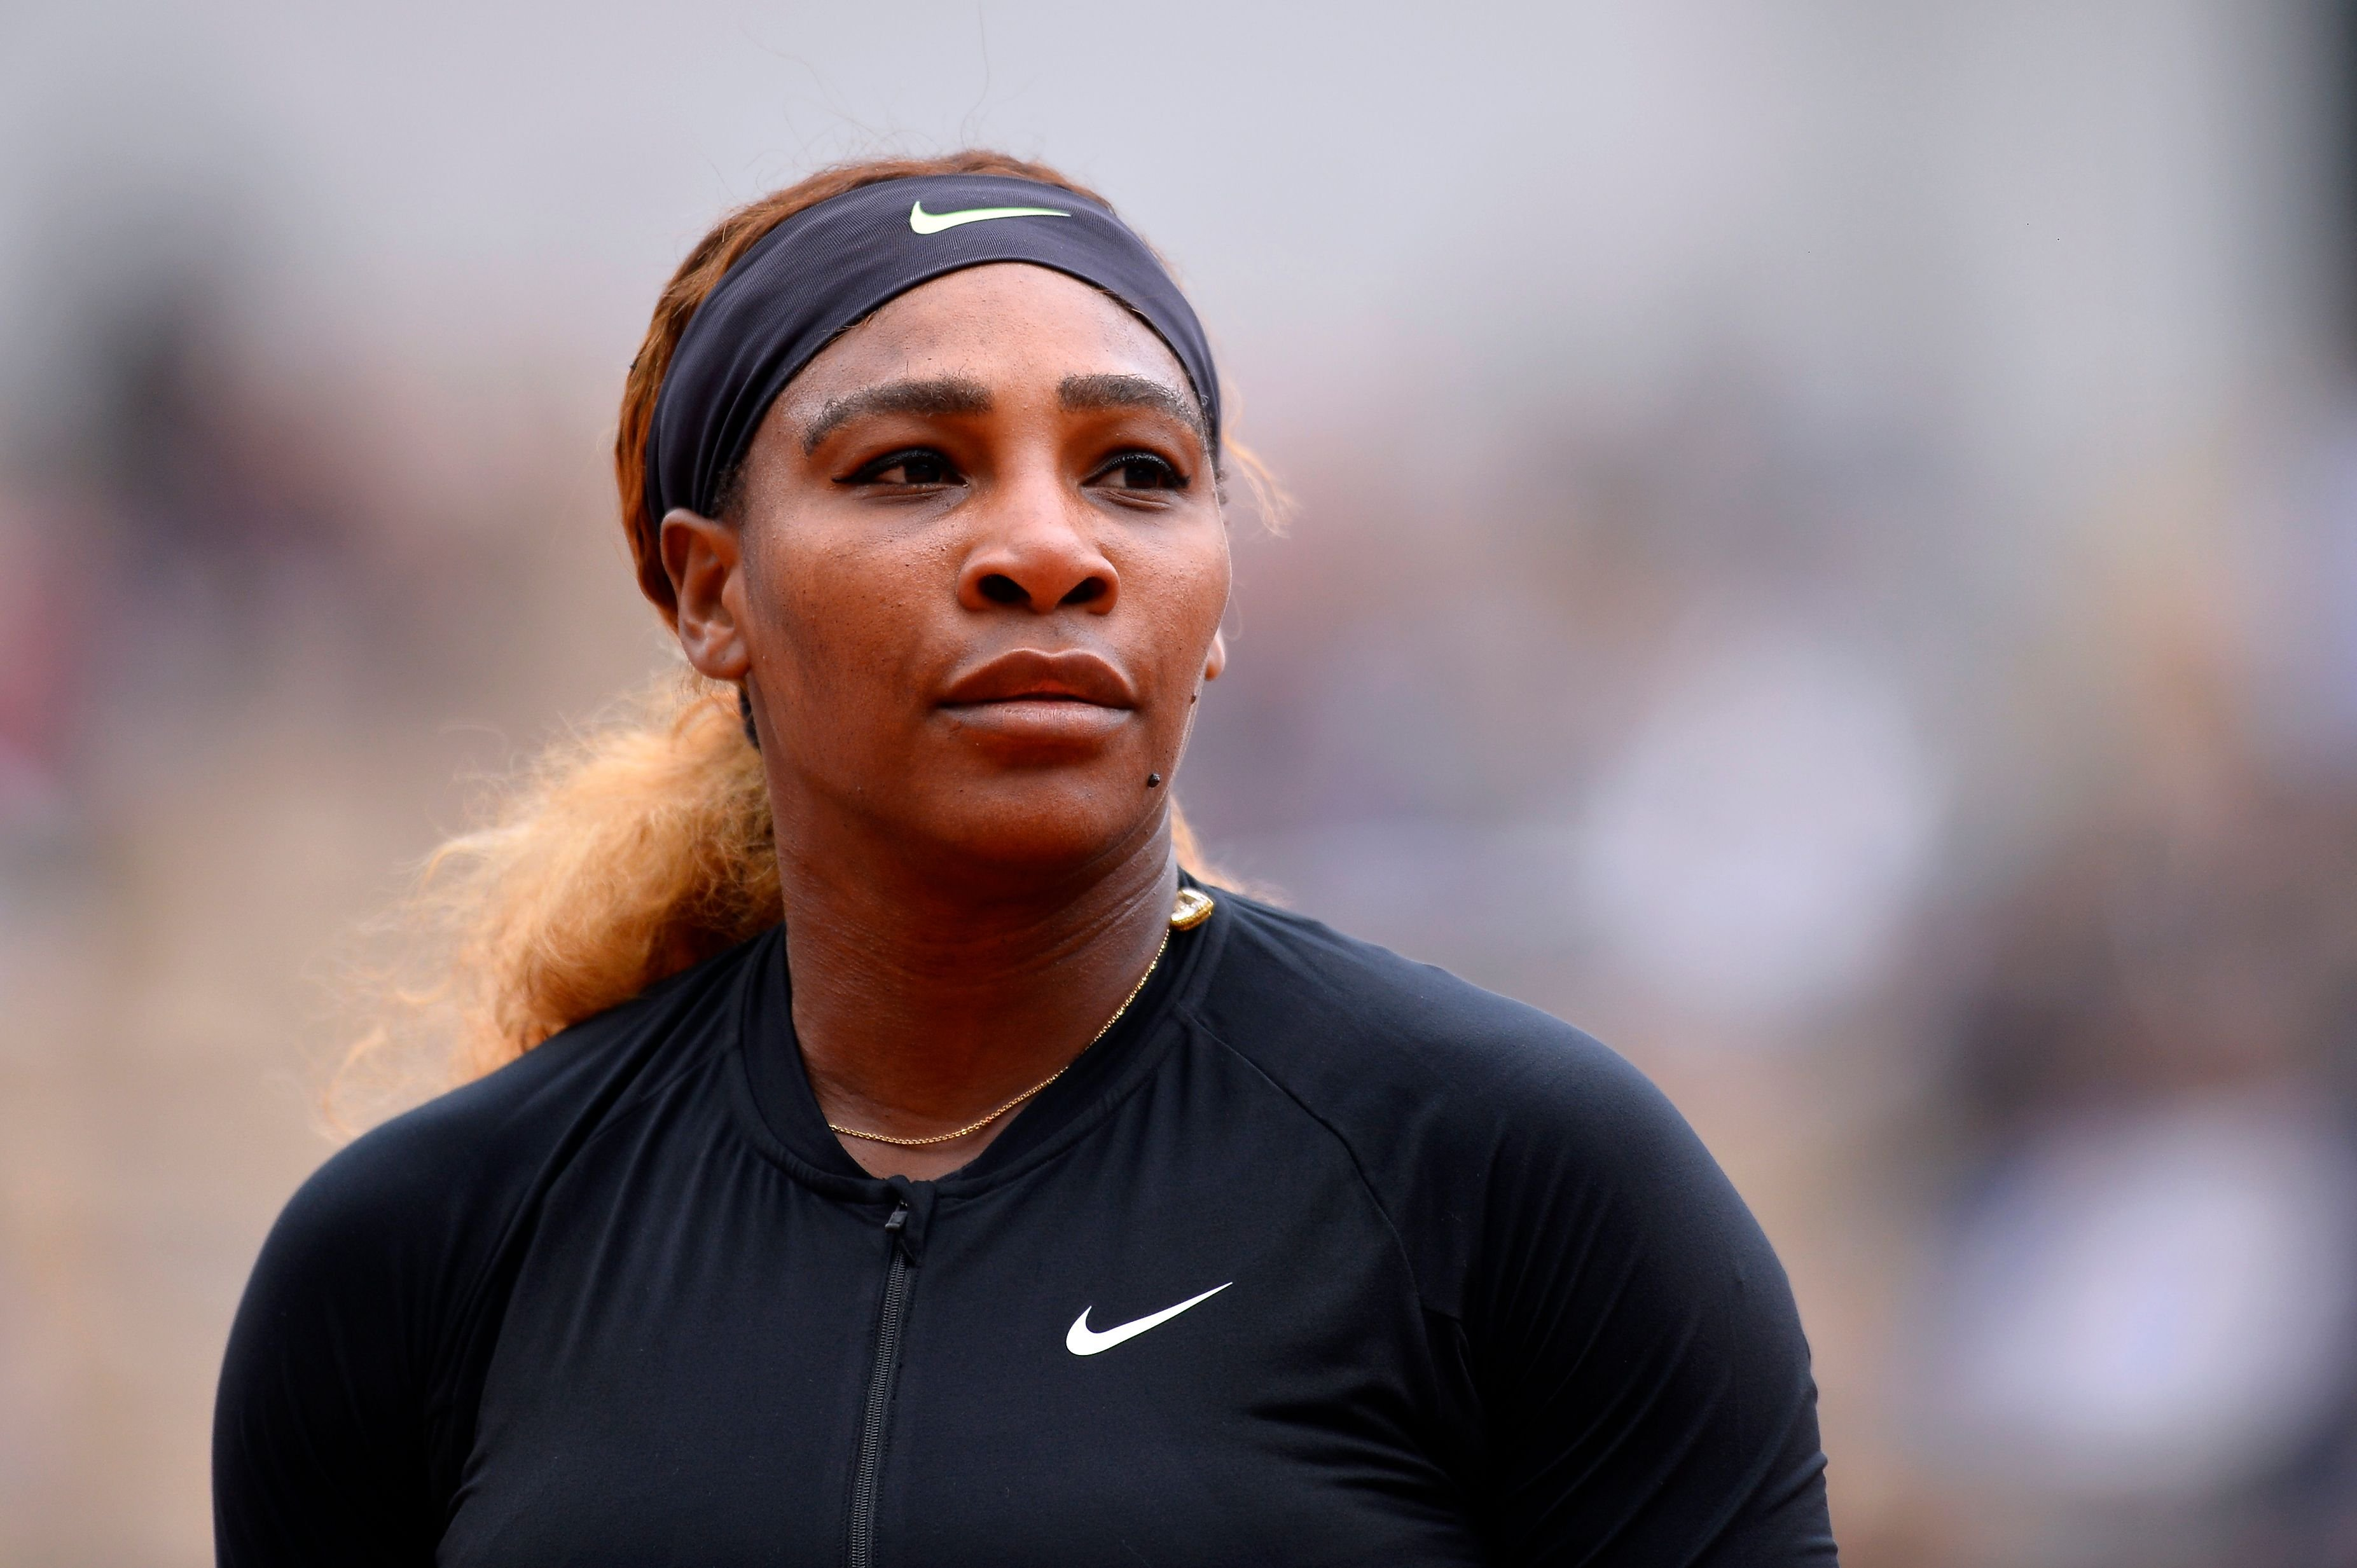 Serena Williams at the 2019 French Open at Roland Garros on May 30, 2019   Photo: Getty Images